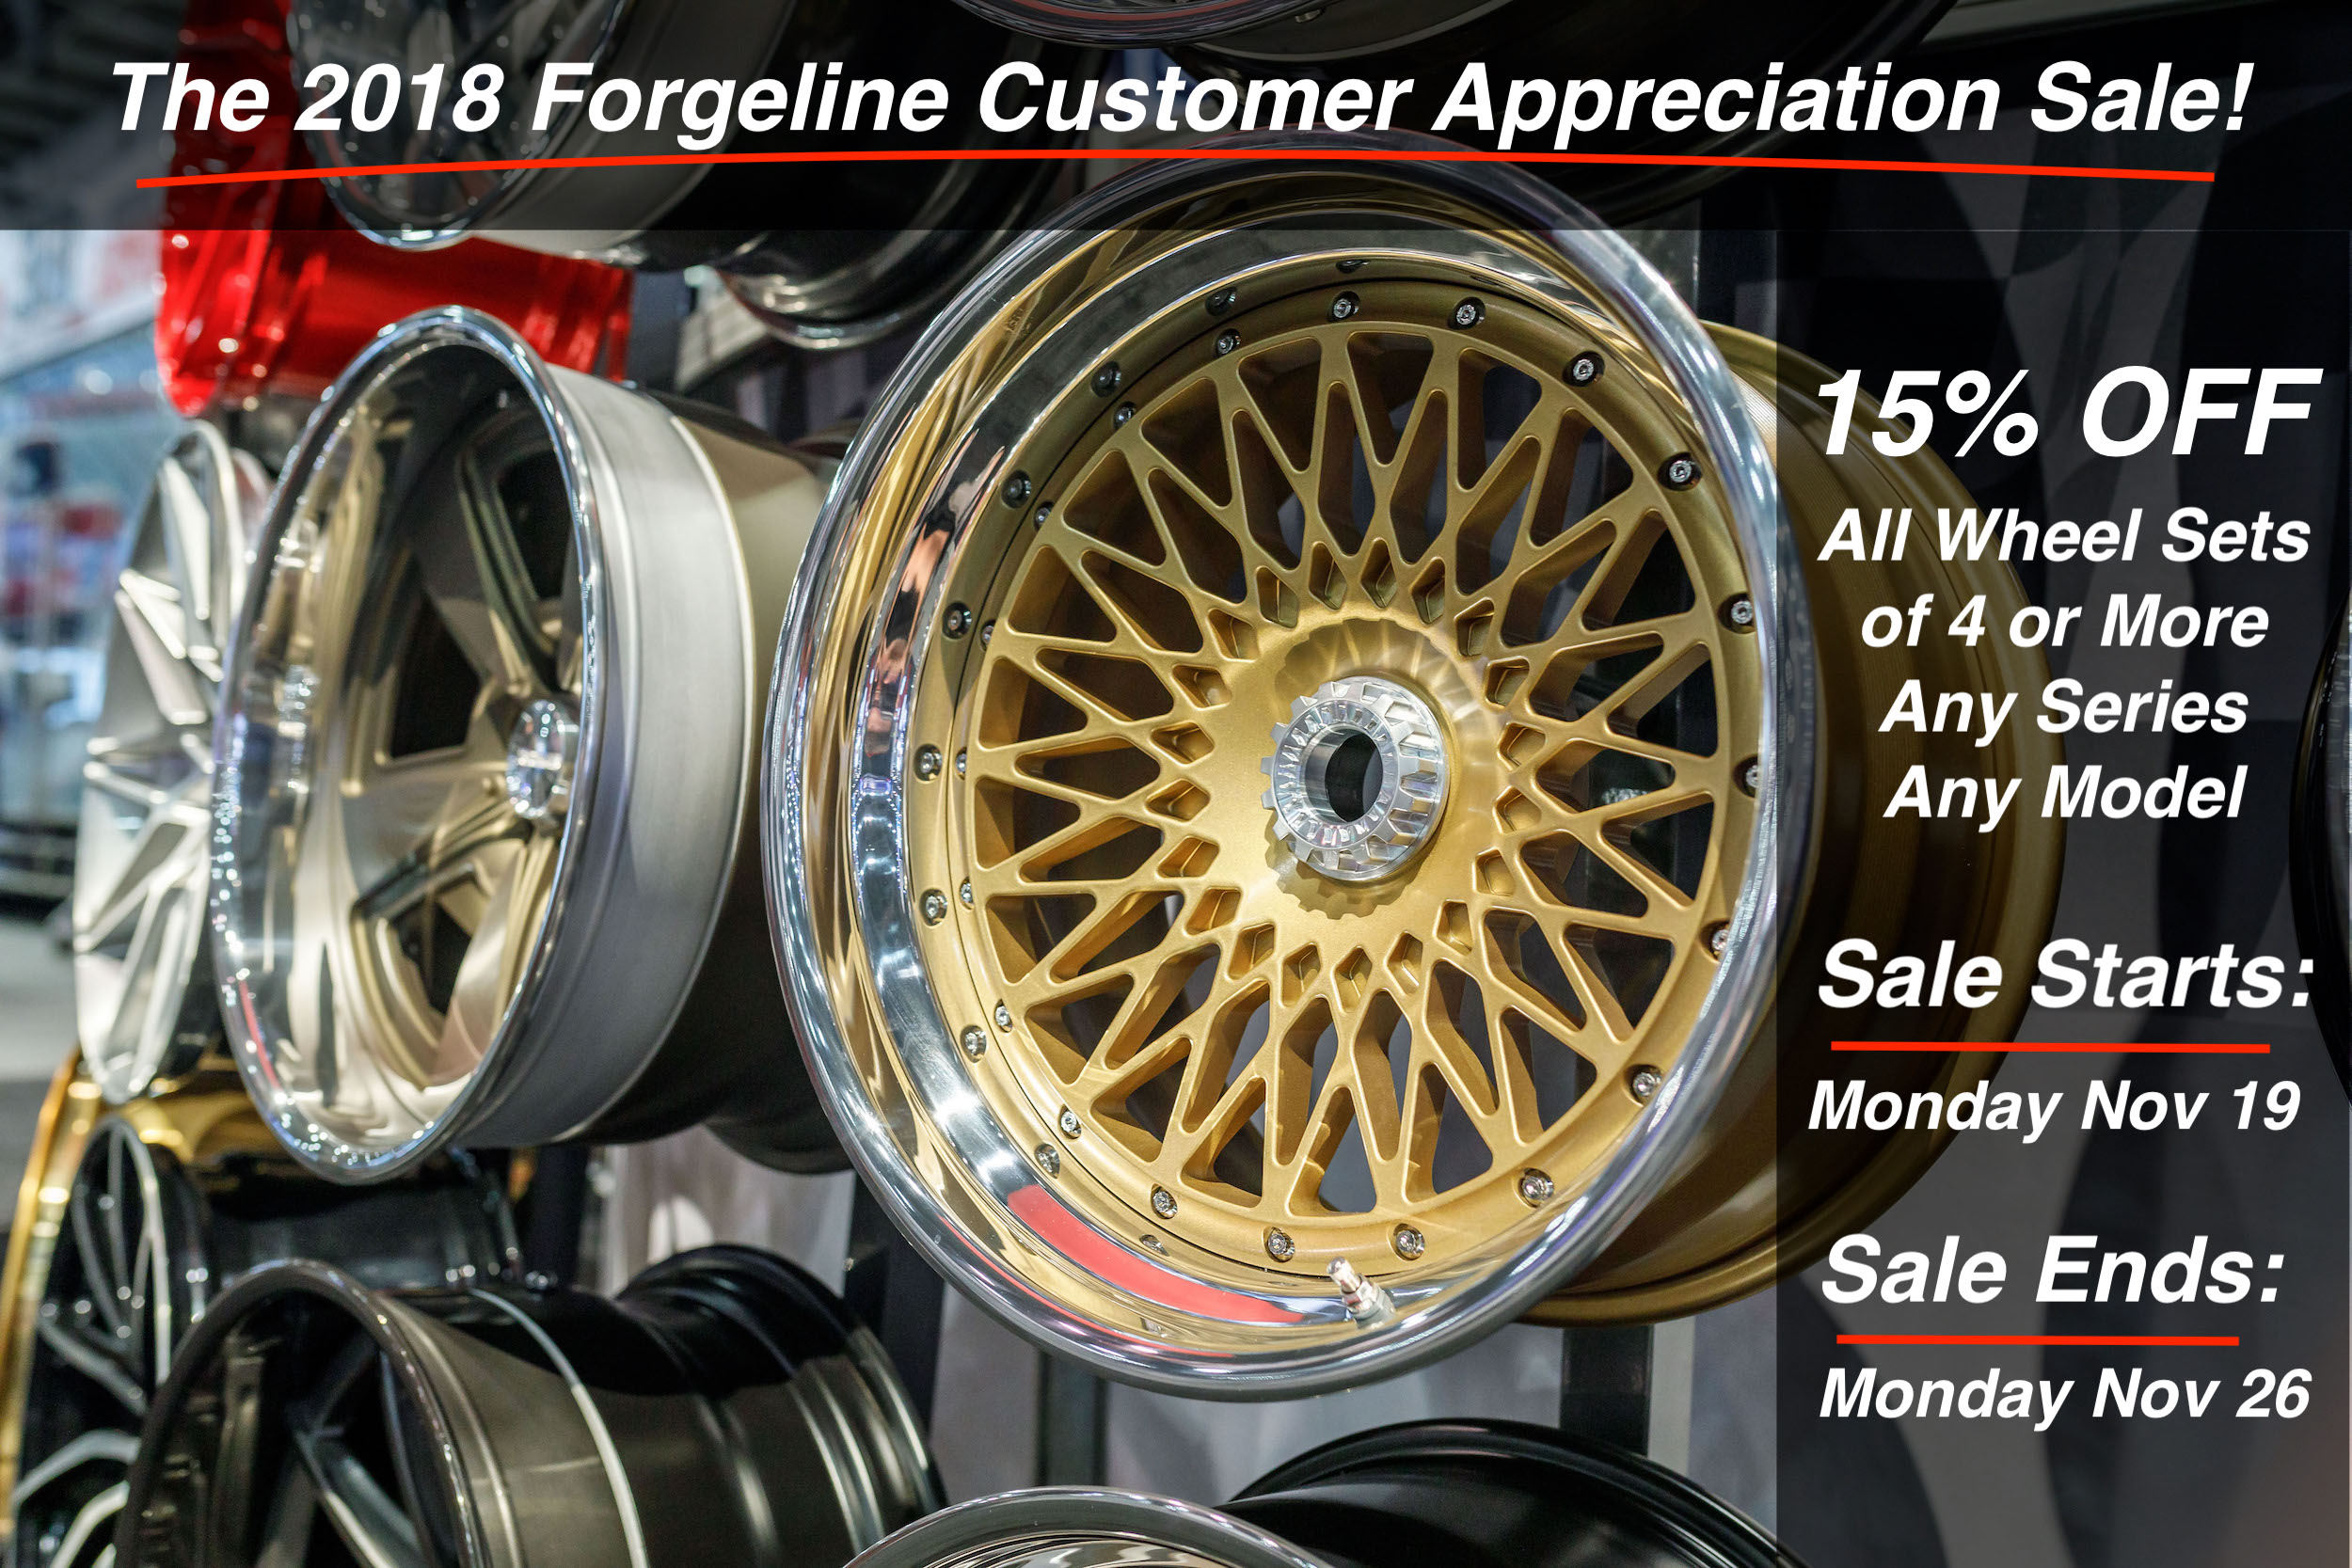 The 2018 Forgeline Customer Appreciation Sale